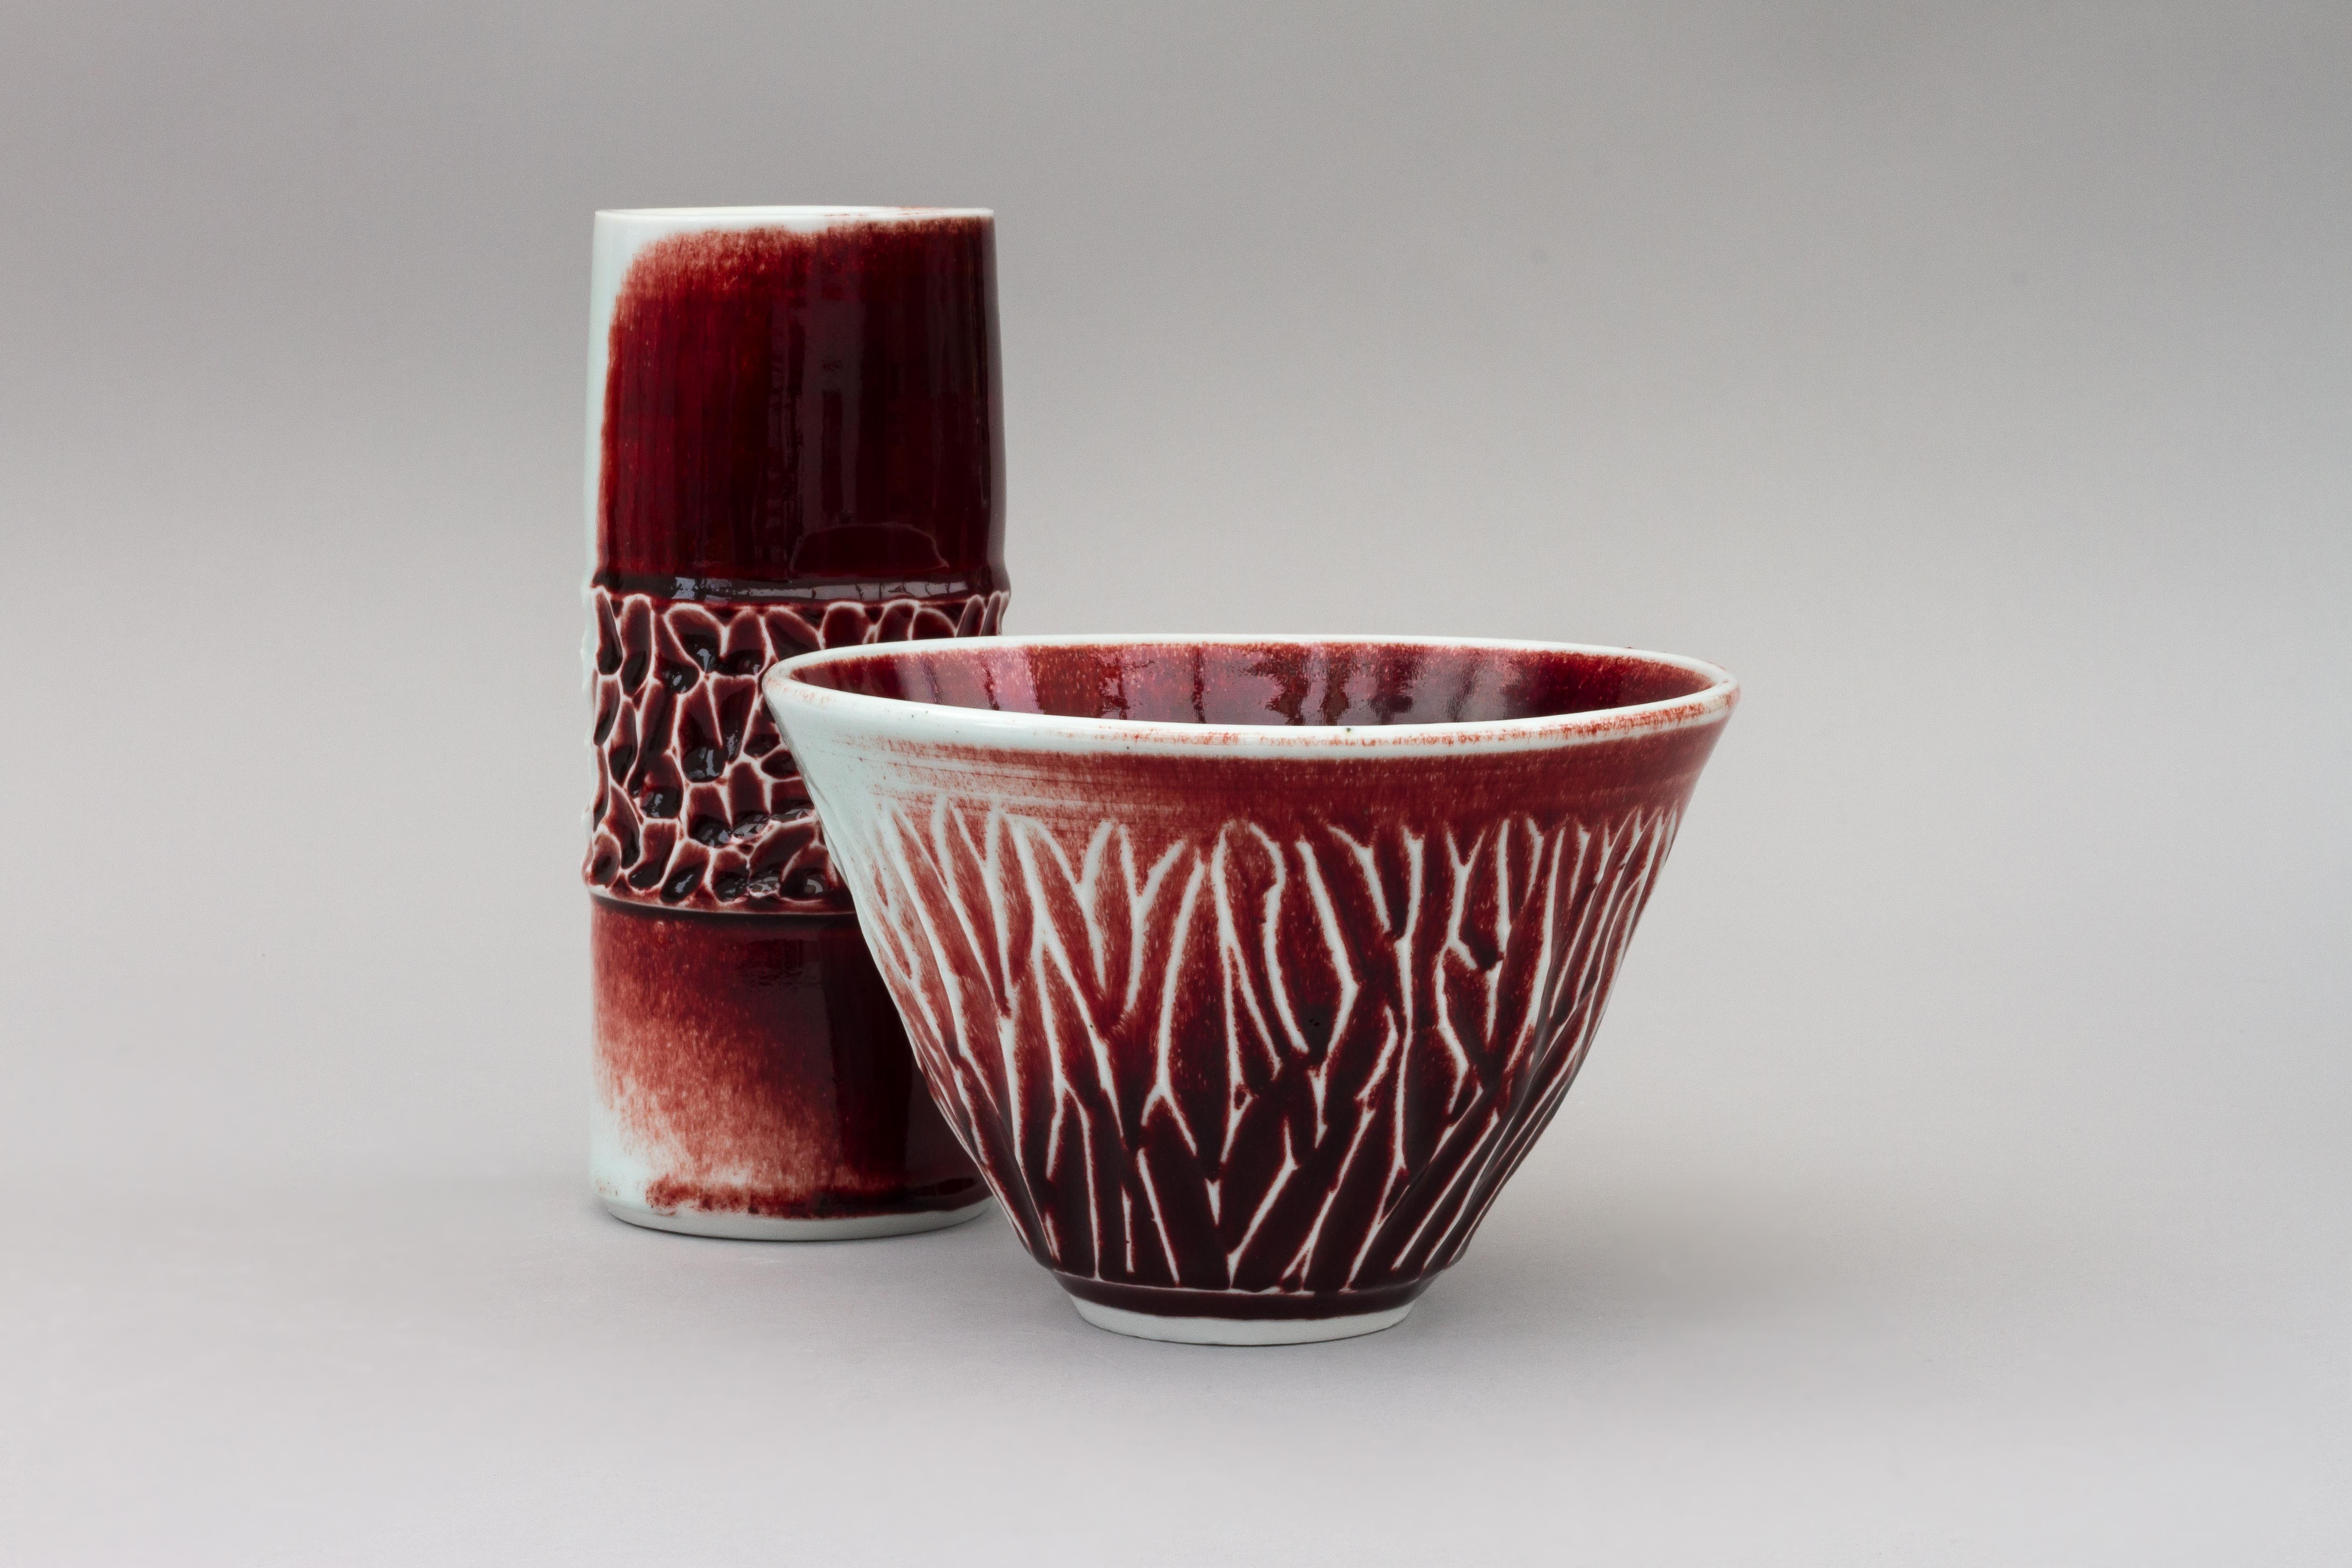 Carved Bowl and Vase